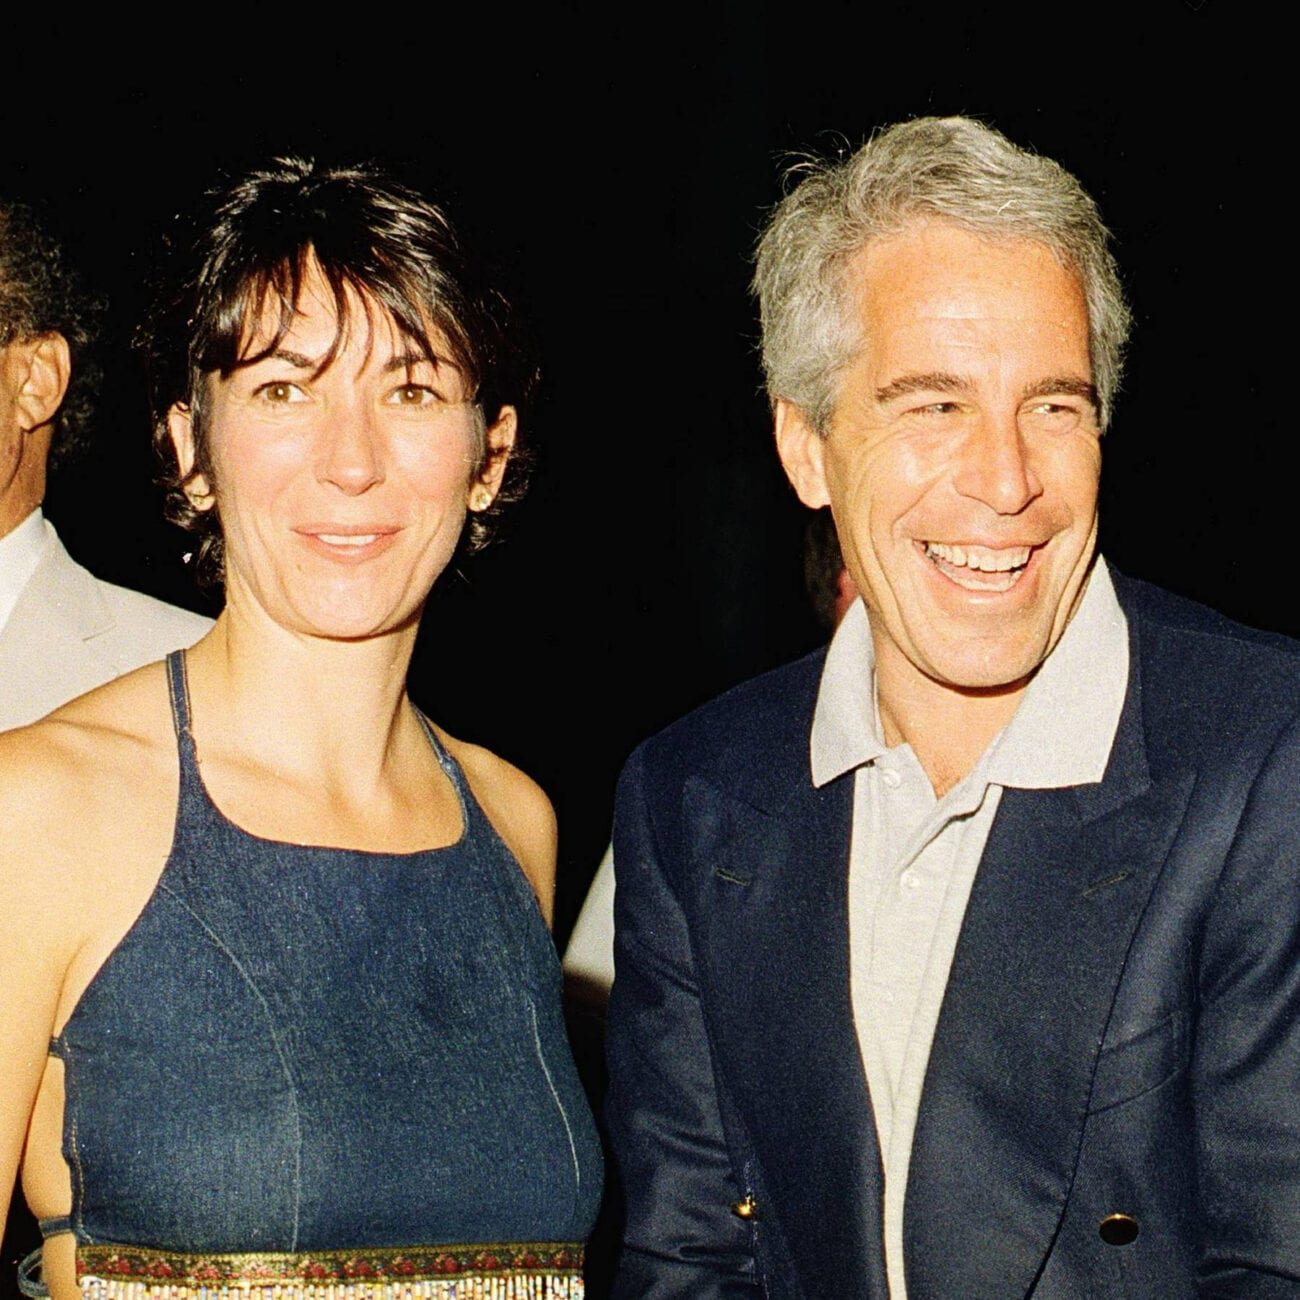 New court documents reveal how Jeffrey Epstein and Ghislaine Maxwell picked their victims. How were their victims selected? Find out here.